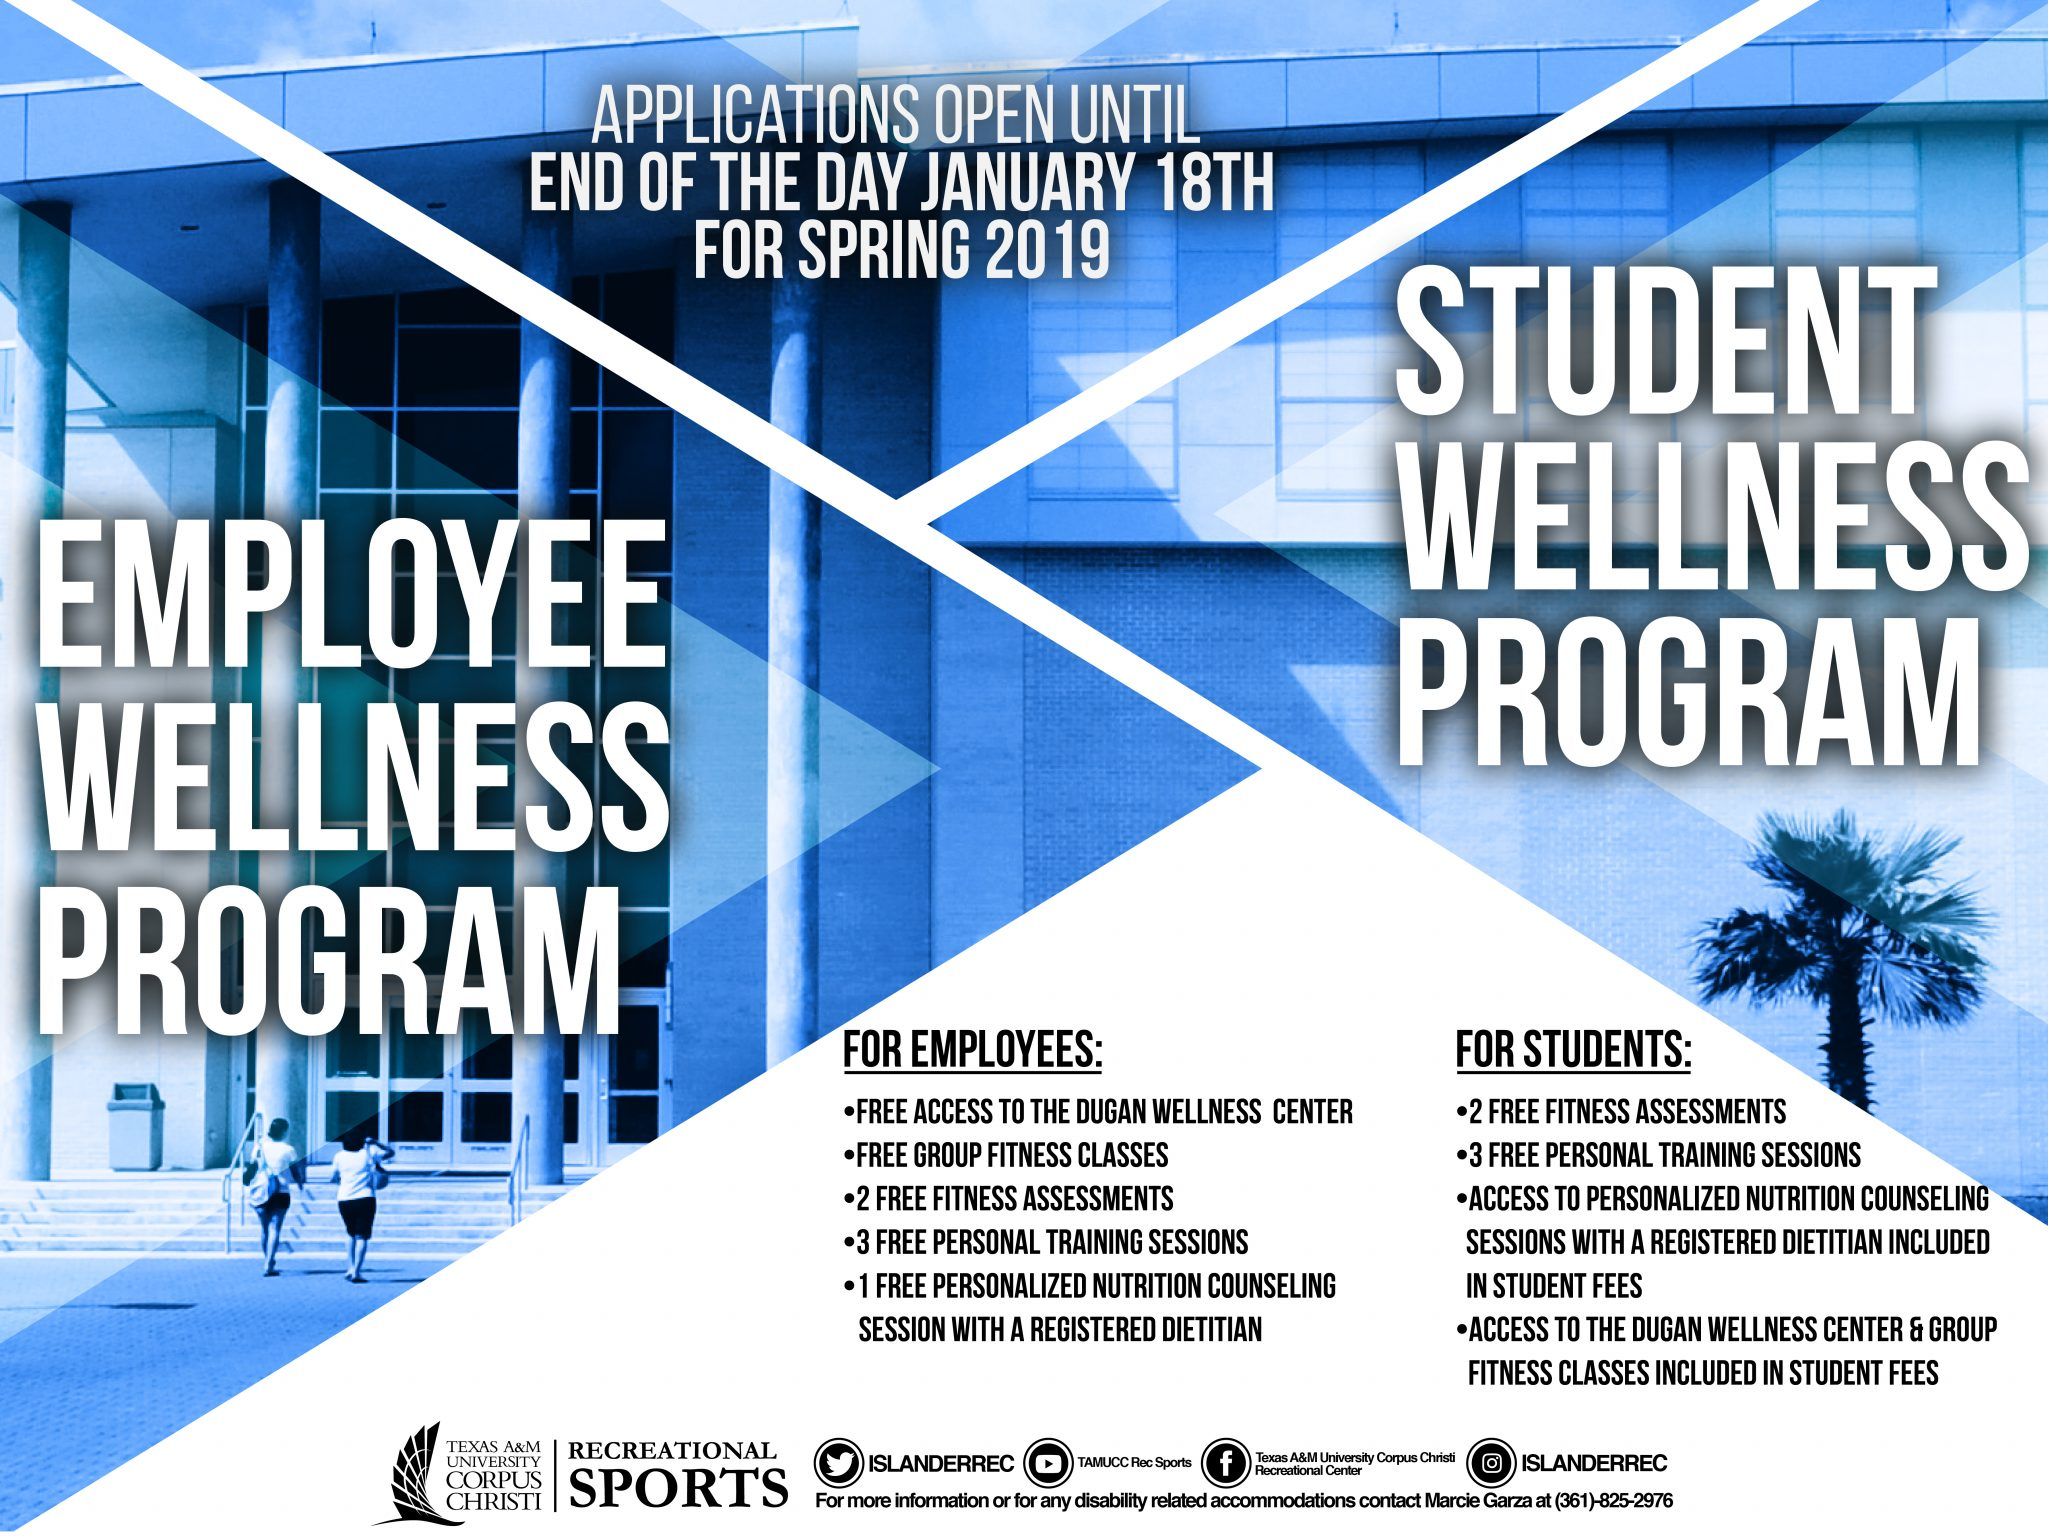 Spring 2019 Student and Employee Wellness Program Information